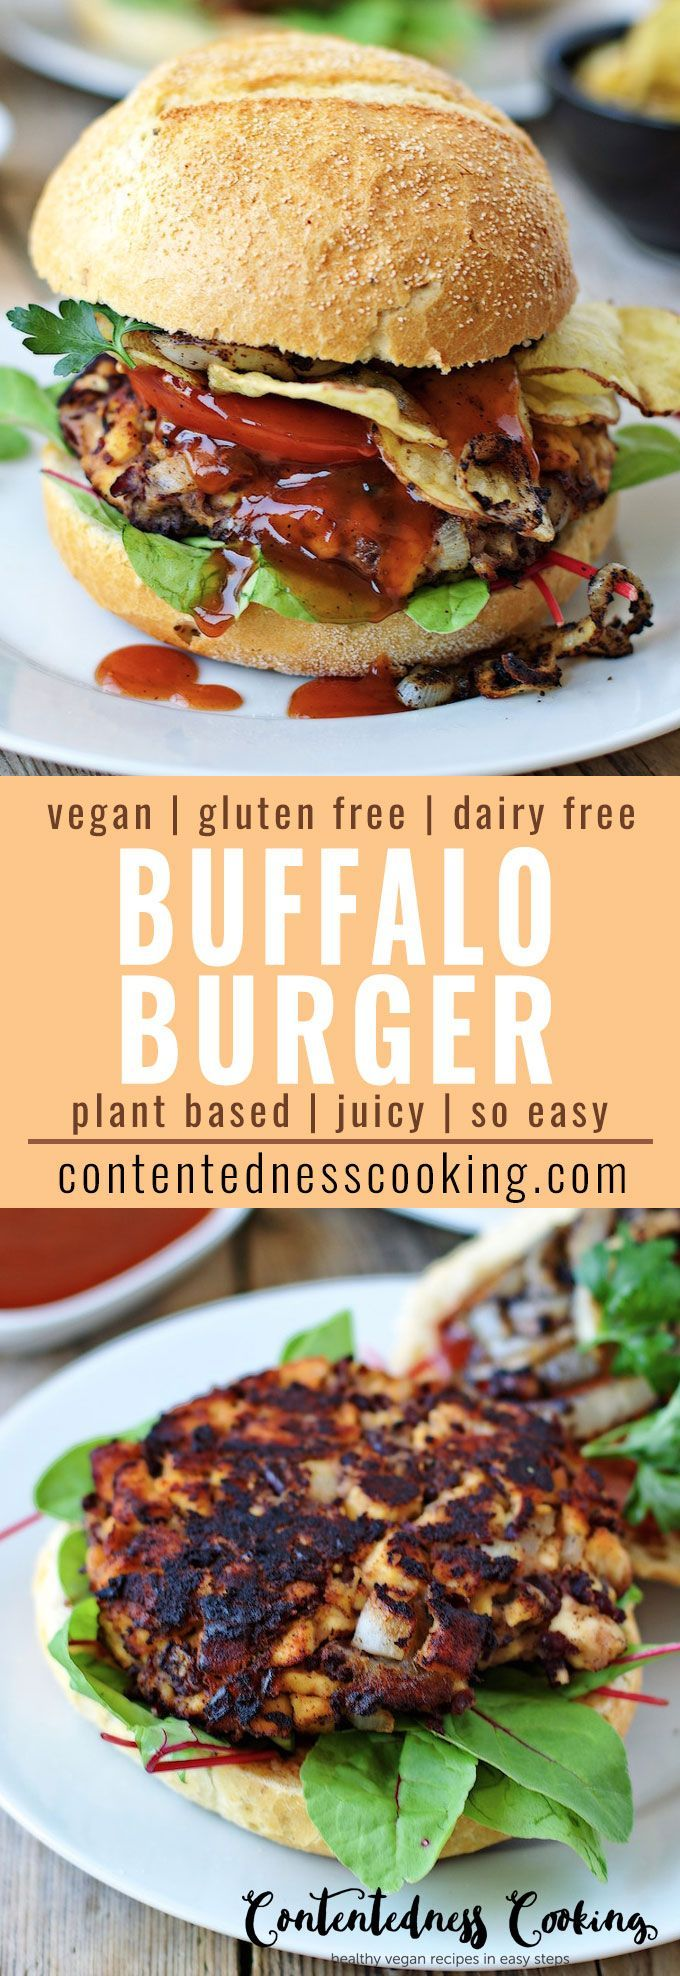 You won't  miss the meat in this juicy and hearty Vegan Buffalo Burger which is incredibly easy made with kidney beans, tempeh, BBQ Sauce and all you favorite toppings on it. Makes an amazing gluten free and dairy free dinner or lunch option.